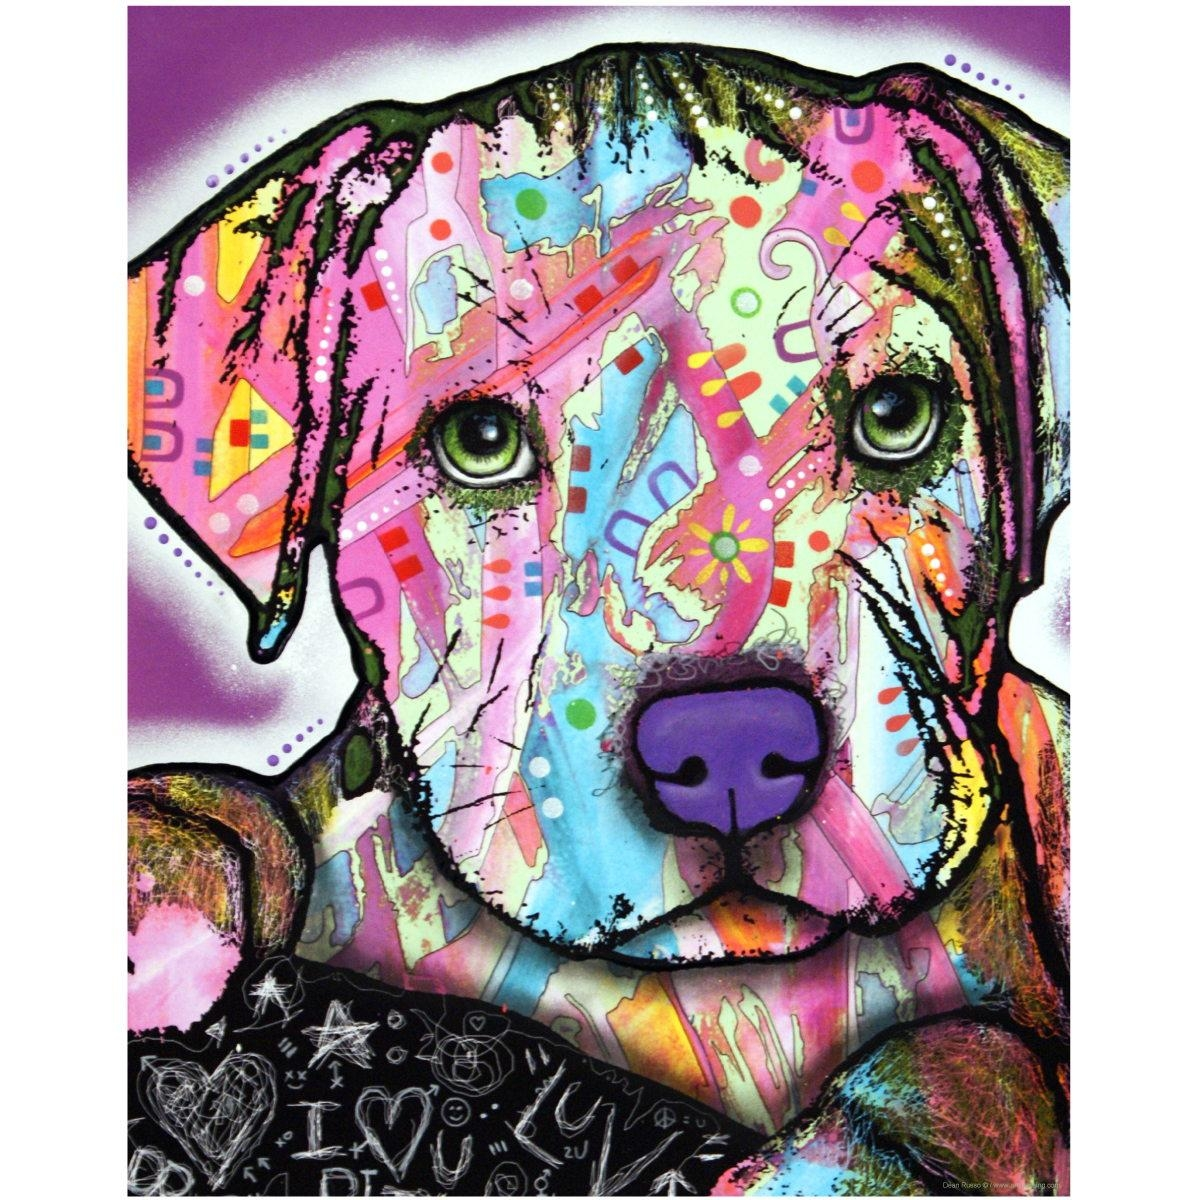 Baby Pit Bull Dog Dean Russo Pop Art Wall Decal | Pet Wall Decor Within Pitbull Wall Art (Image 7 of 20)